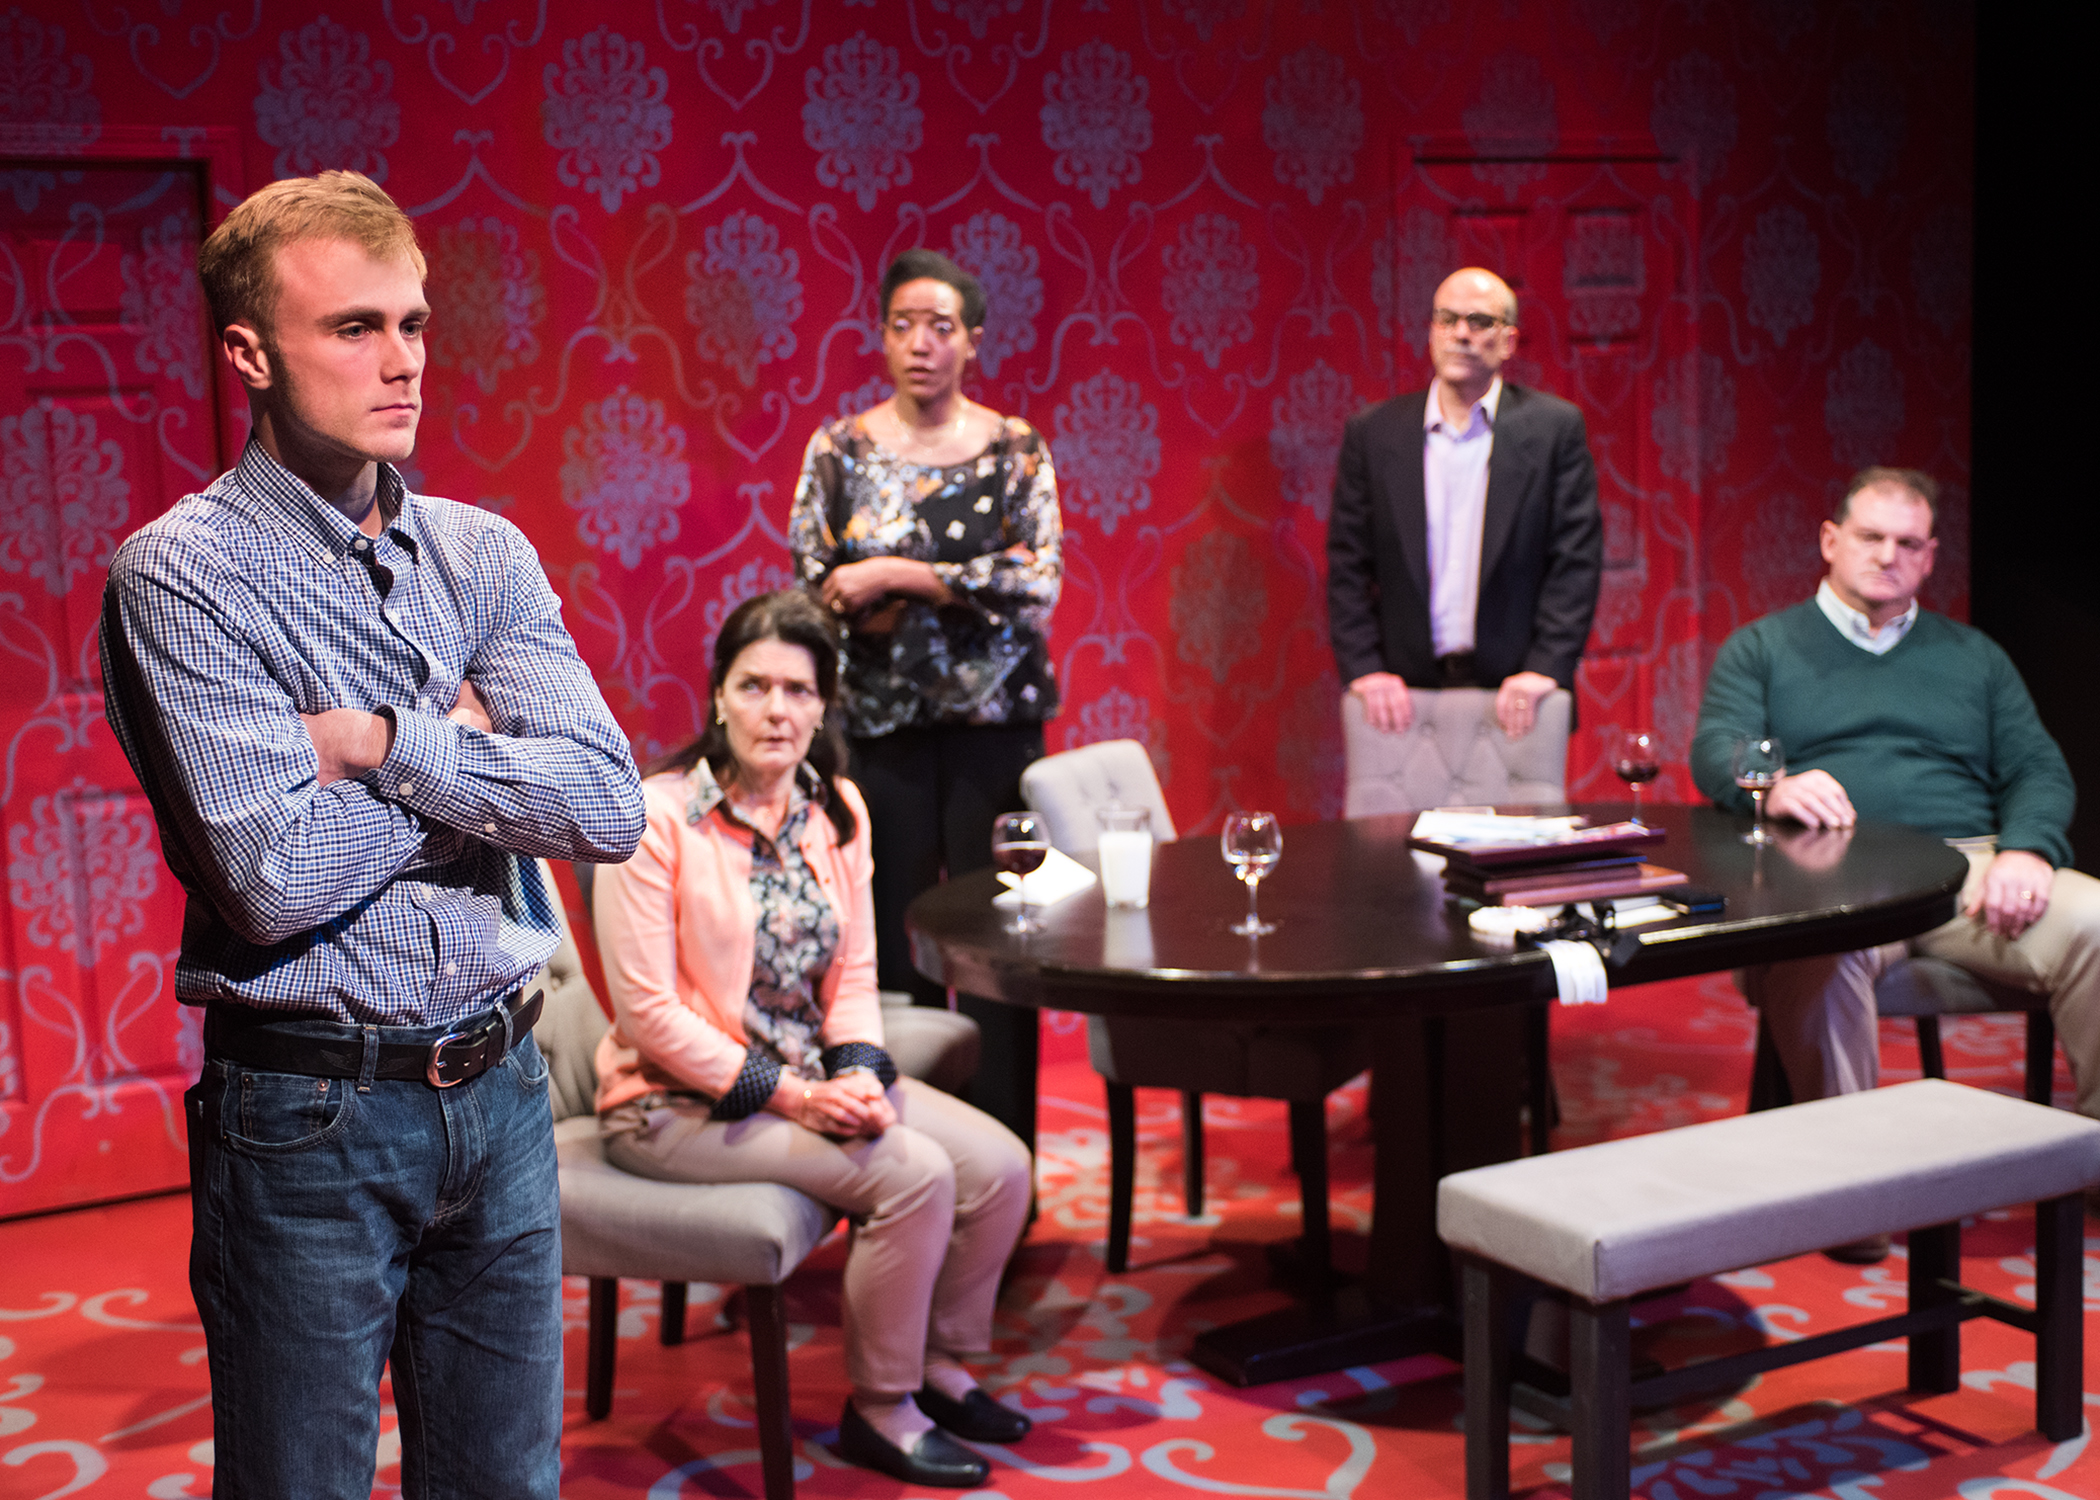 L to R: Curtis (Baela Tinsley) looks back on the tragedy that led him here as Tamara (Cheryl Smith), Debora (Desiree Rogers), Michael (Lawrence Radecker), and Bill (Kenneth Heaton) look on in shock. Photo by Lois Tema.